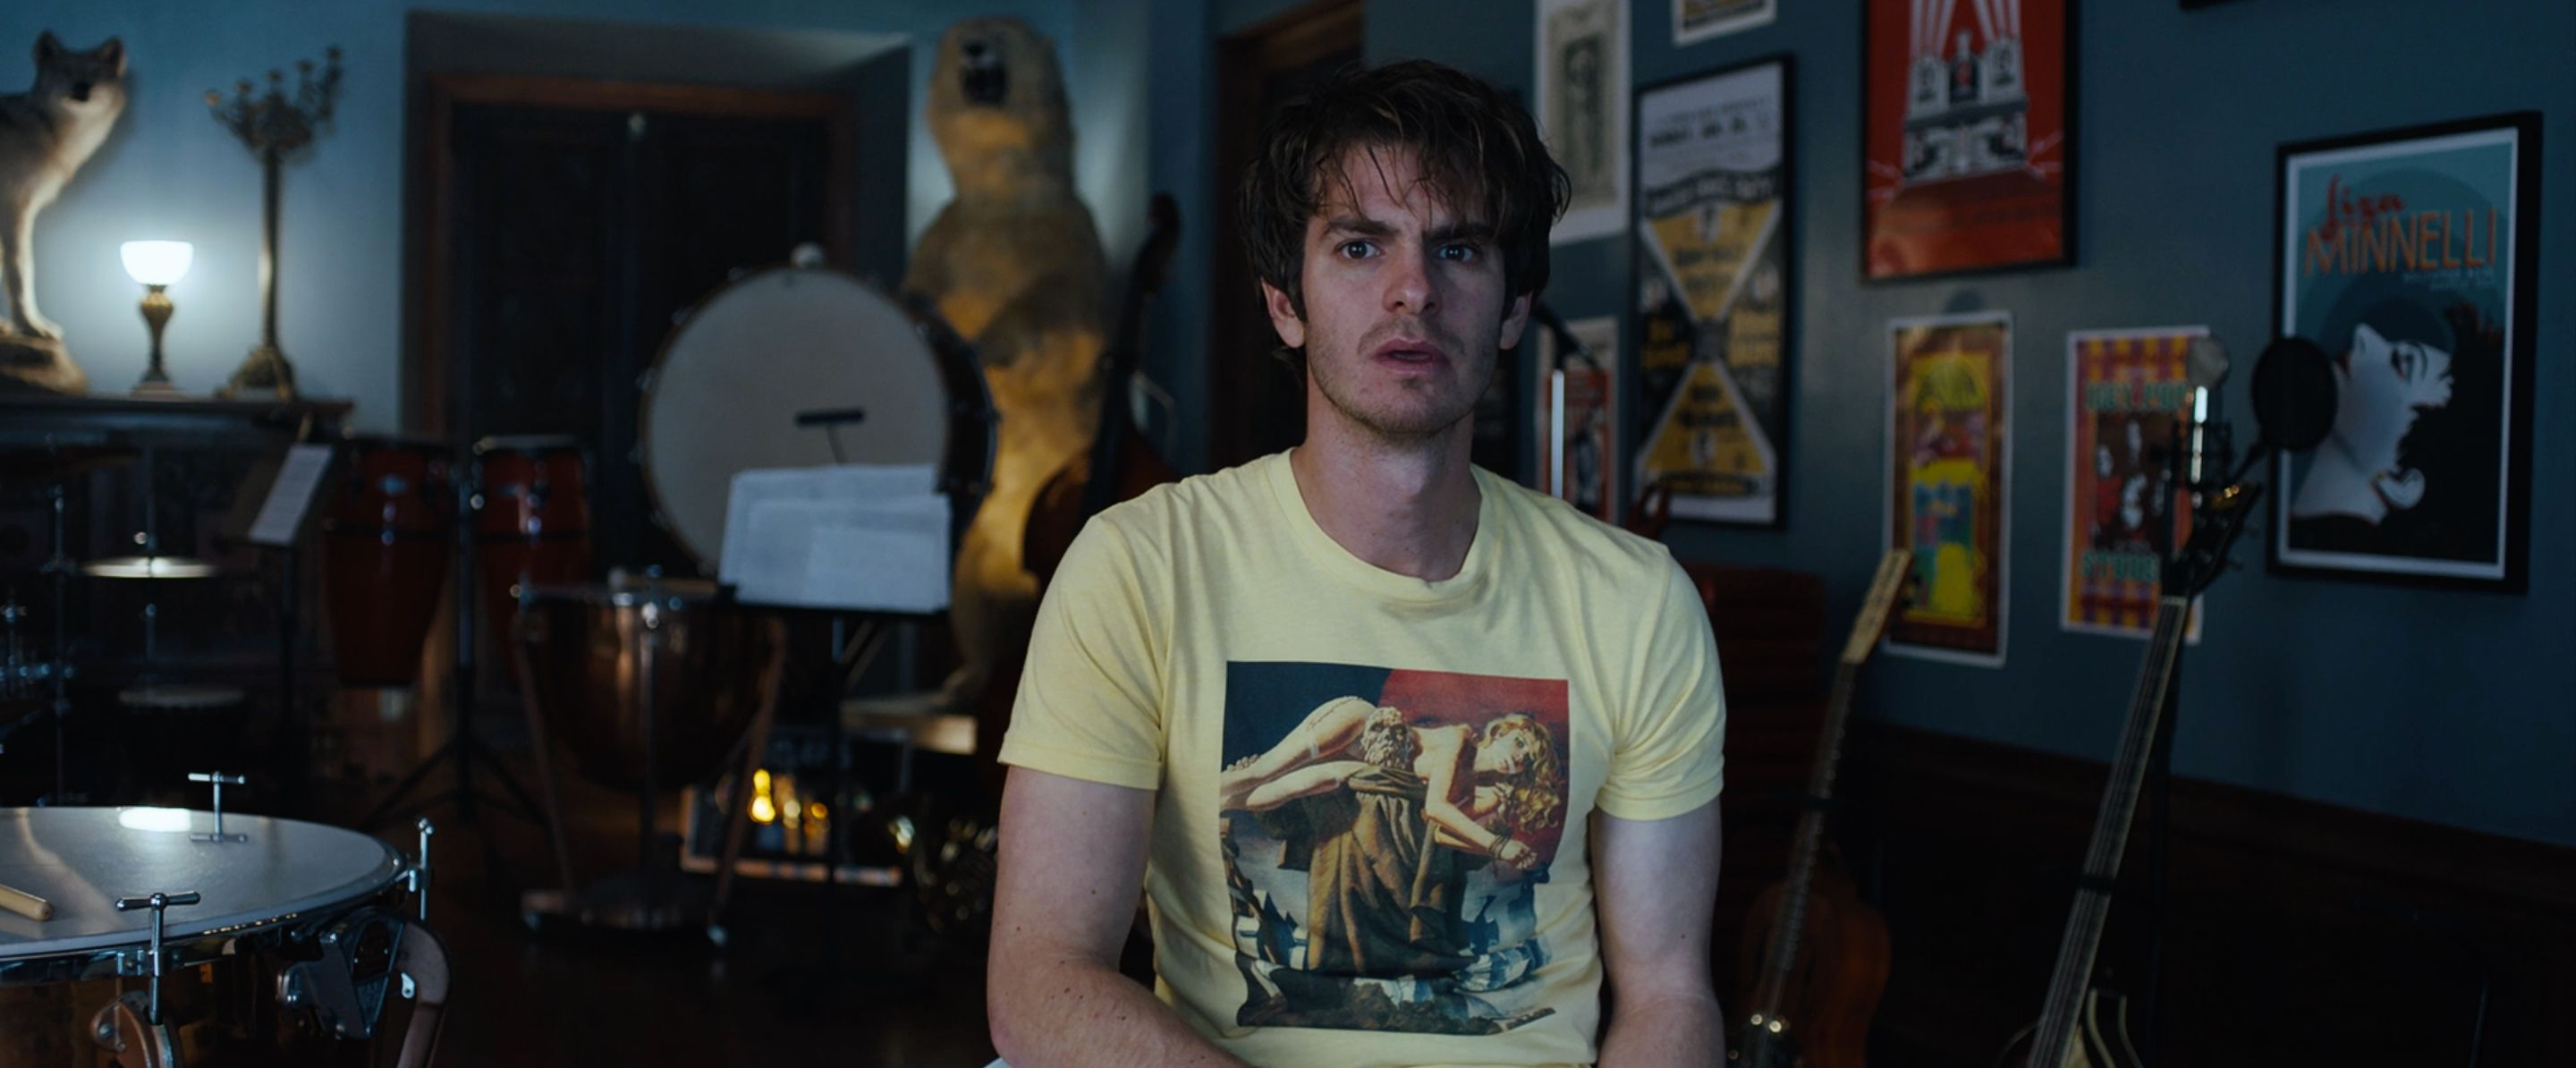 Andrew Garfield Learns About A Giant Pop Culture Conspiracy In This Under The Silver Lake Clip